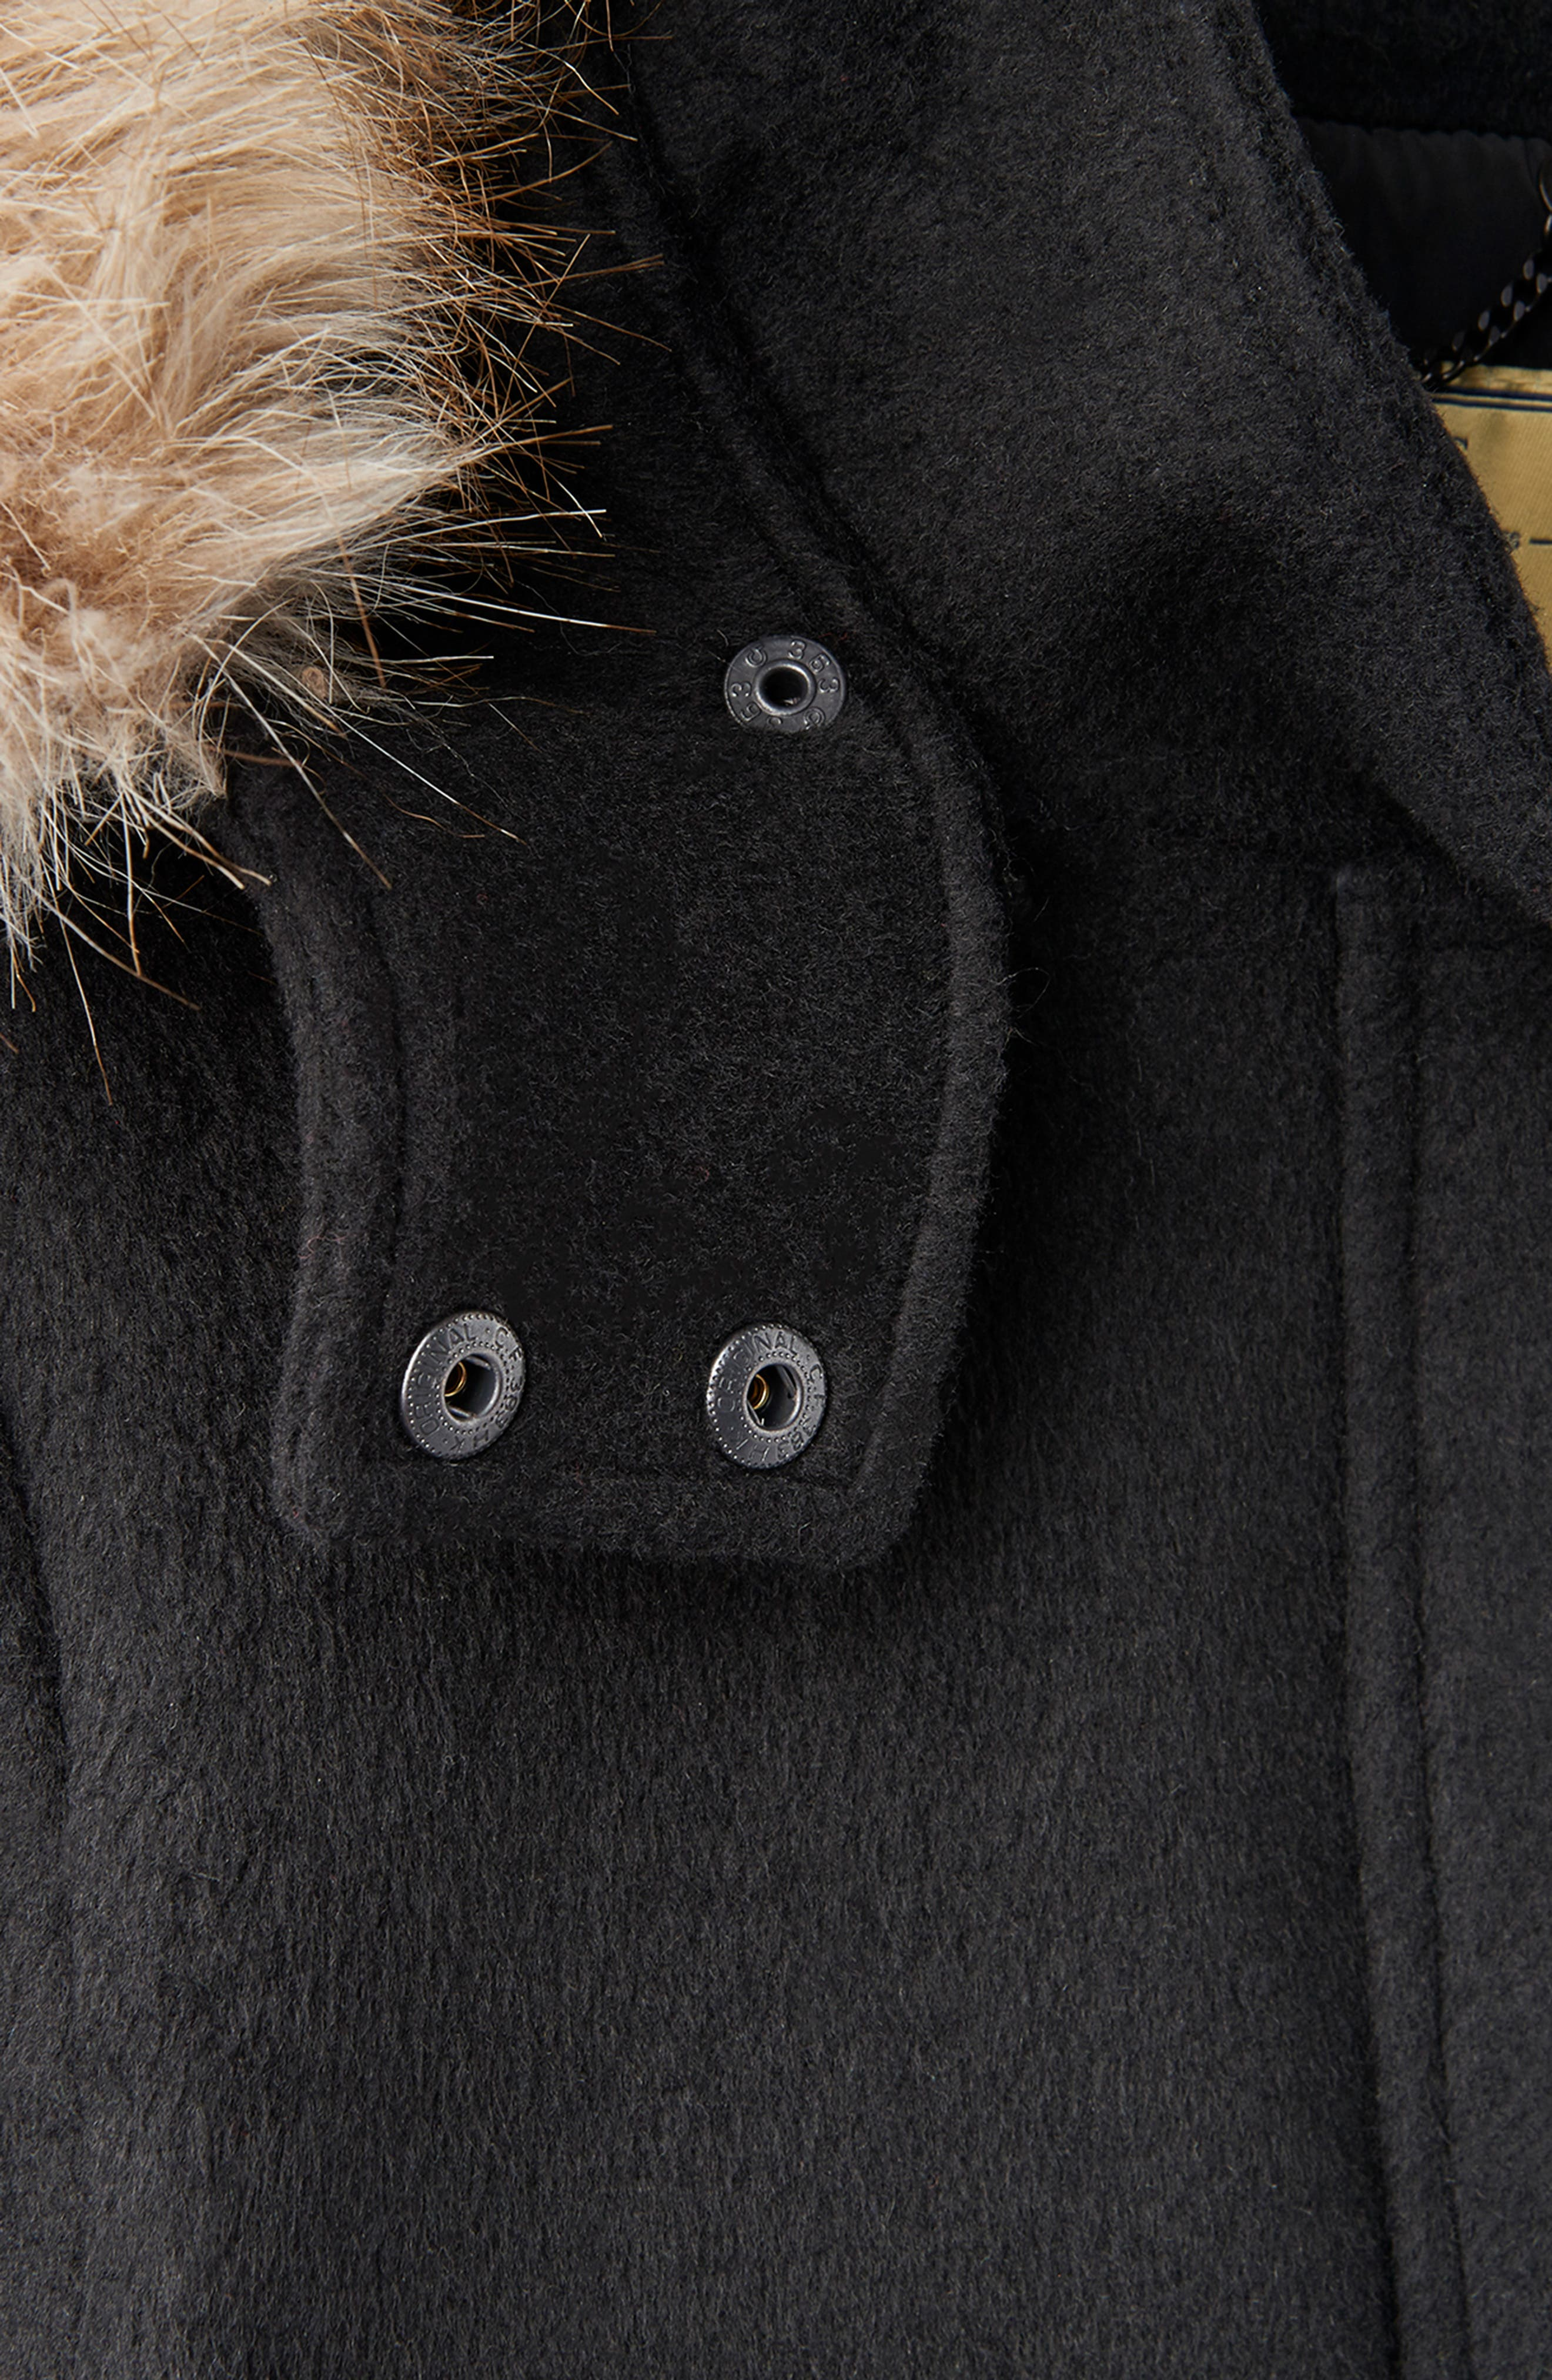 Mixed Texture Hooded Coat with Faux Fur Trim,                             Alternate thumbnail 13, color,                             BLACK